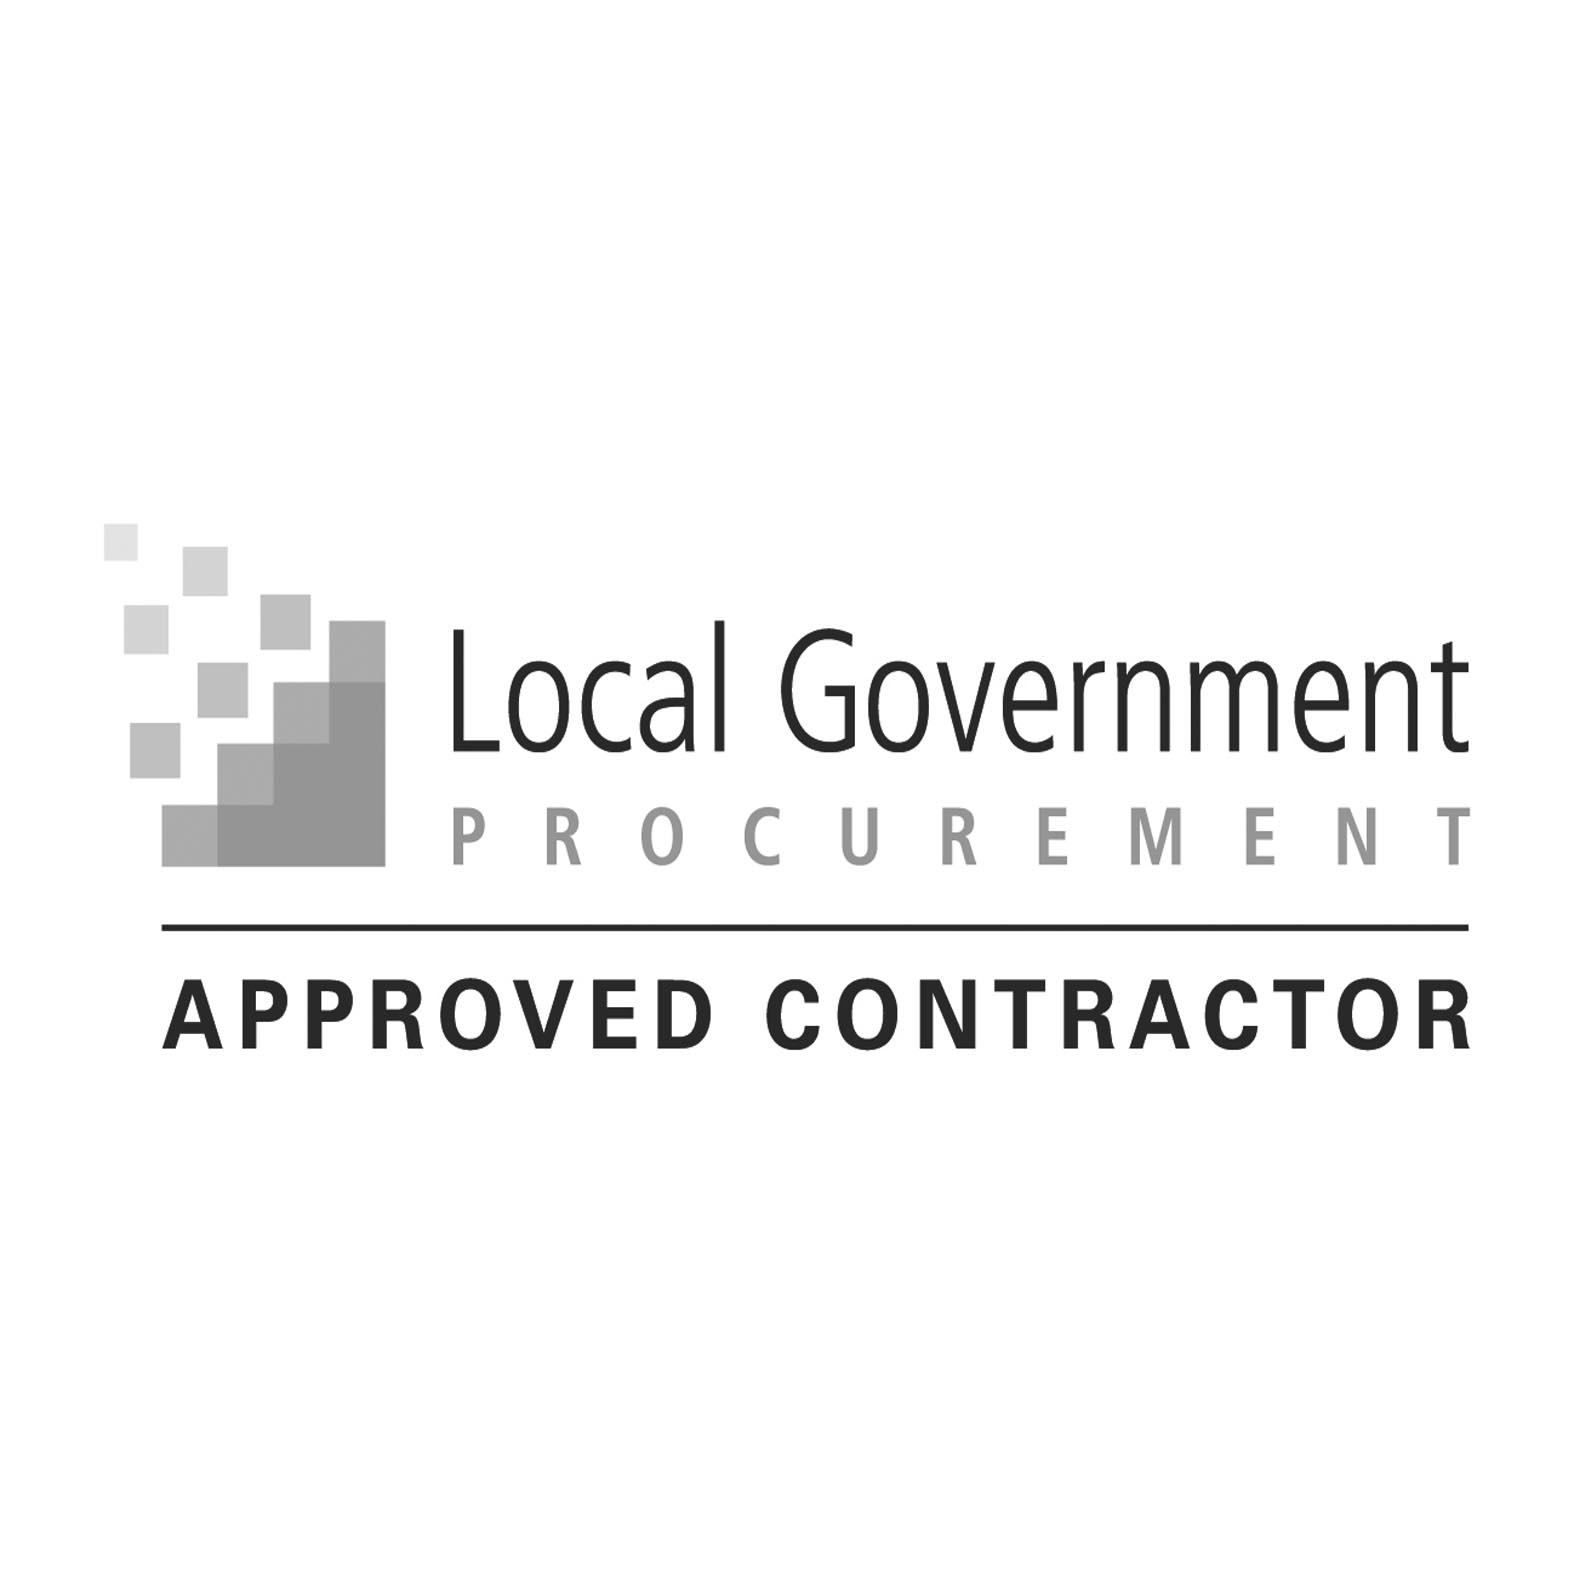 Local government procurement approved contractor ppe safety